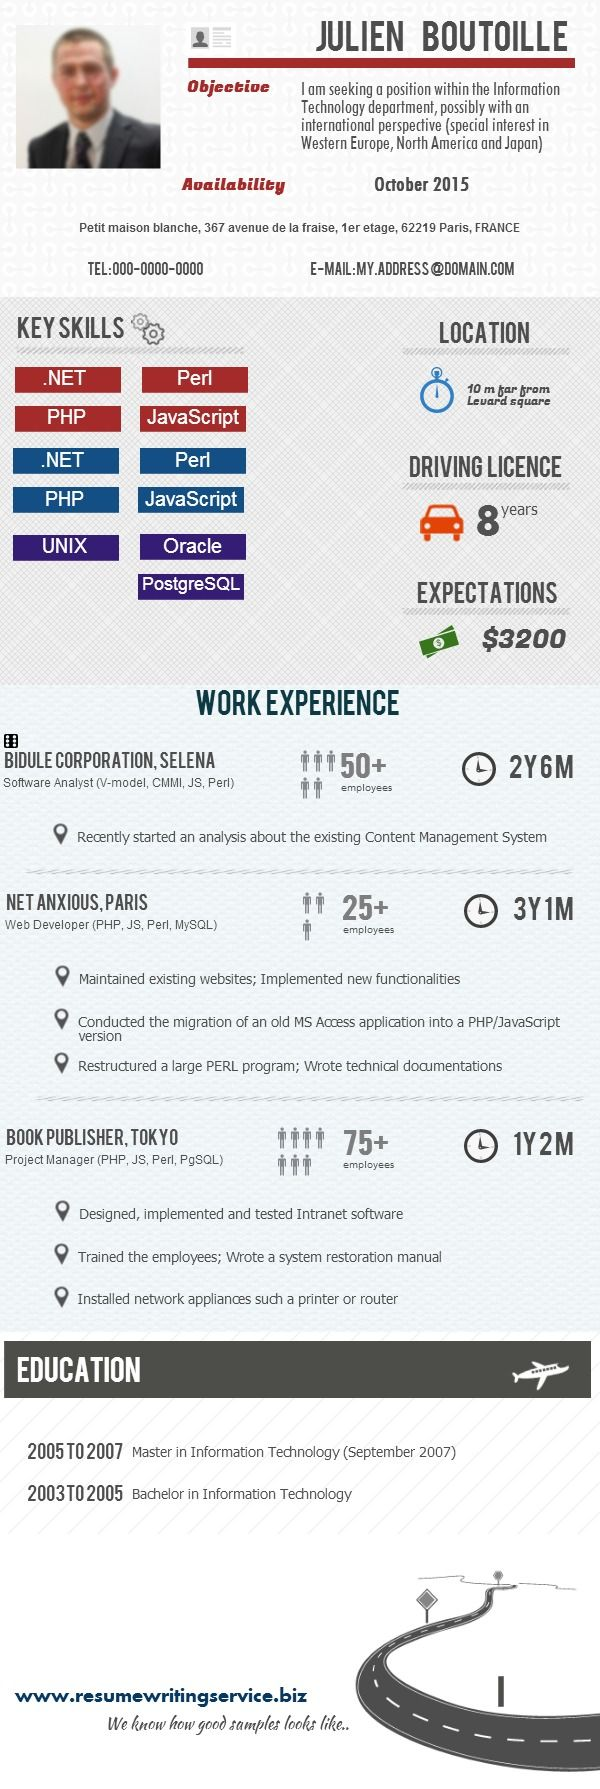 49 best images about resume writing service on pinterest job